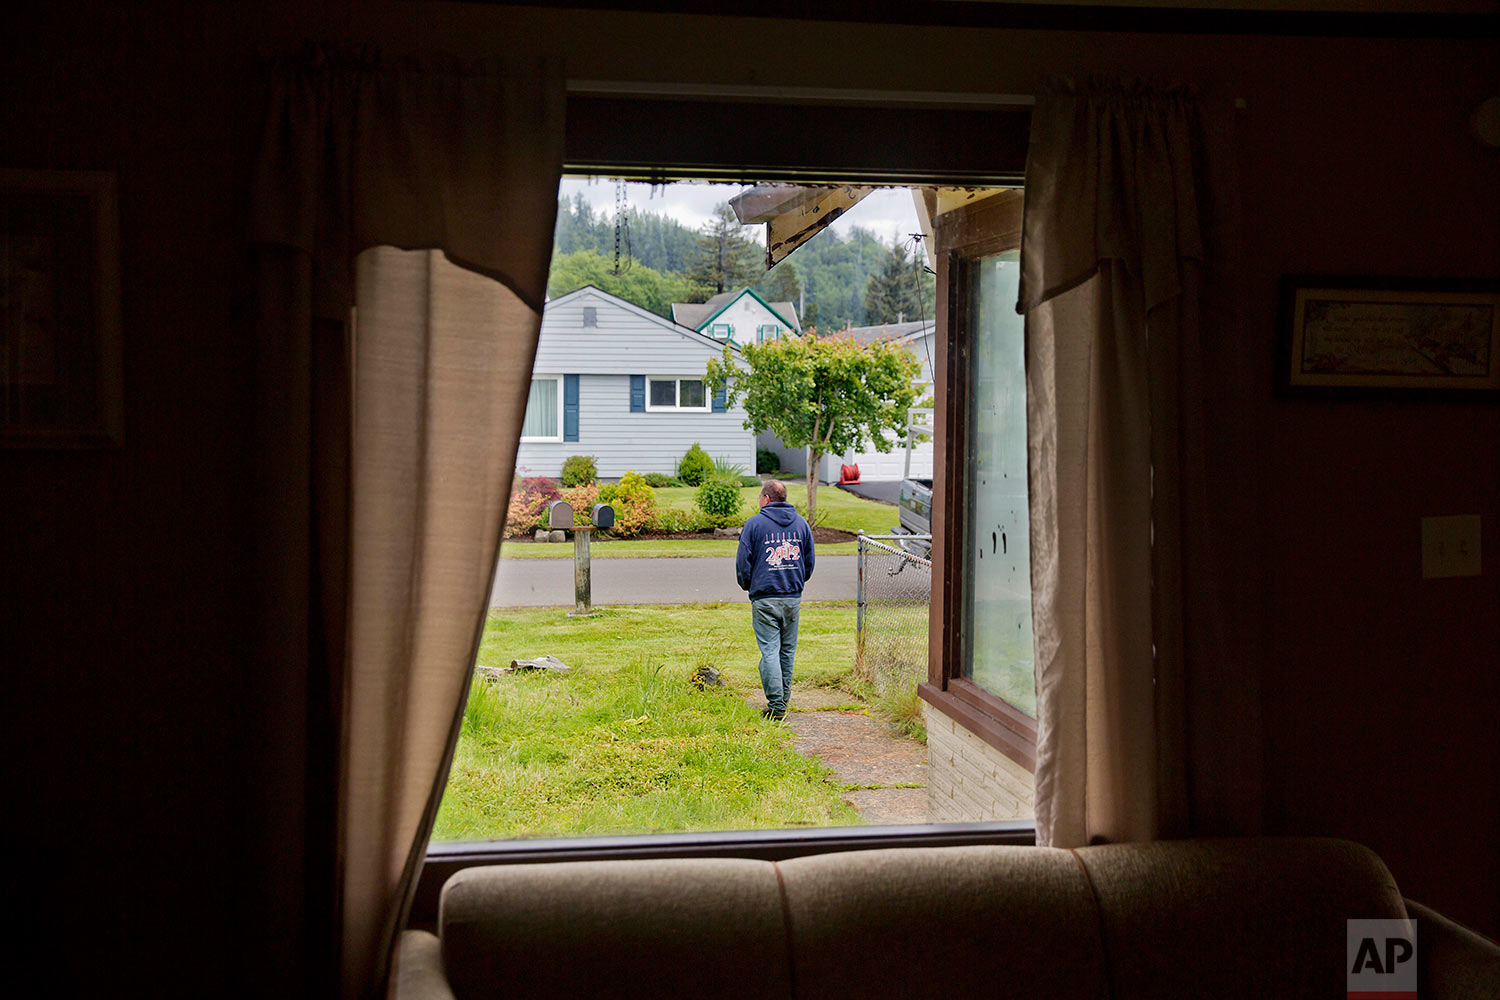 """Robert LaCount, a recovering addict, shows a young woman's funeral program in Hoquiam, Wash., on Monday, June 12, 2017. He walked her down the aisle at her wedding and eight months later carried the casket at her funeral. The mother of three had been addicted to heroin, recovered, relapsed and hanged herself. """"It's too sad,"""" says LaCount, himself a recovering addict. """"But it happens all the time."""" (AP Photo/David Goldman)"""